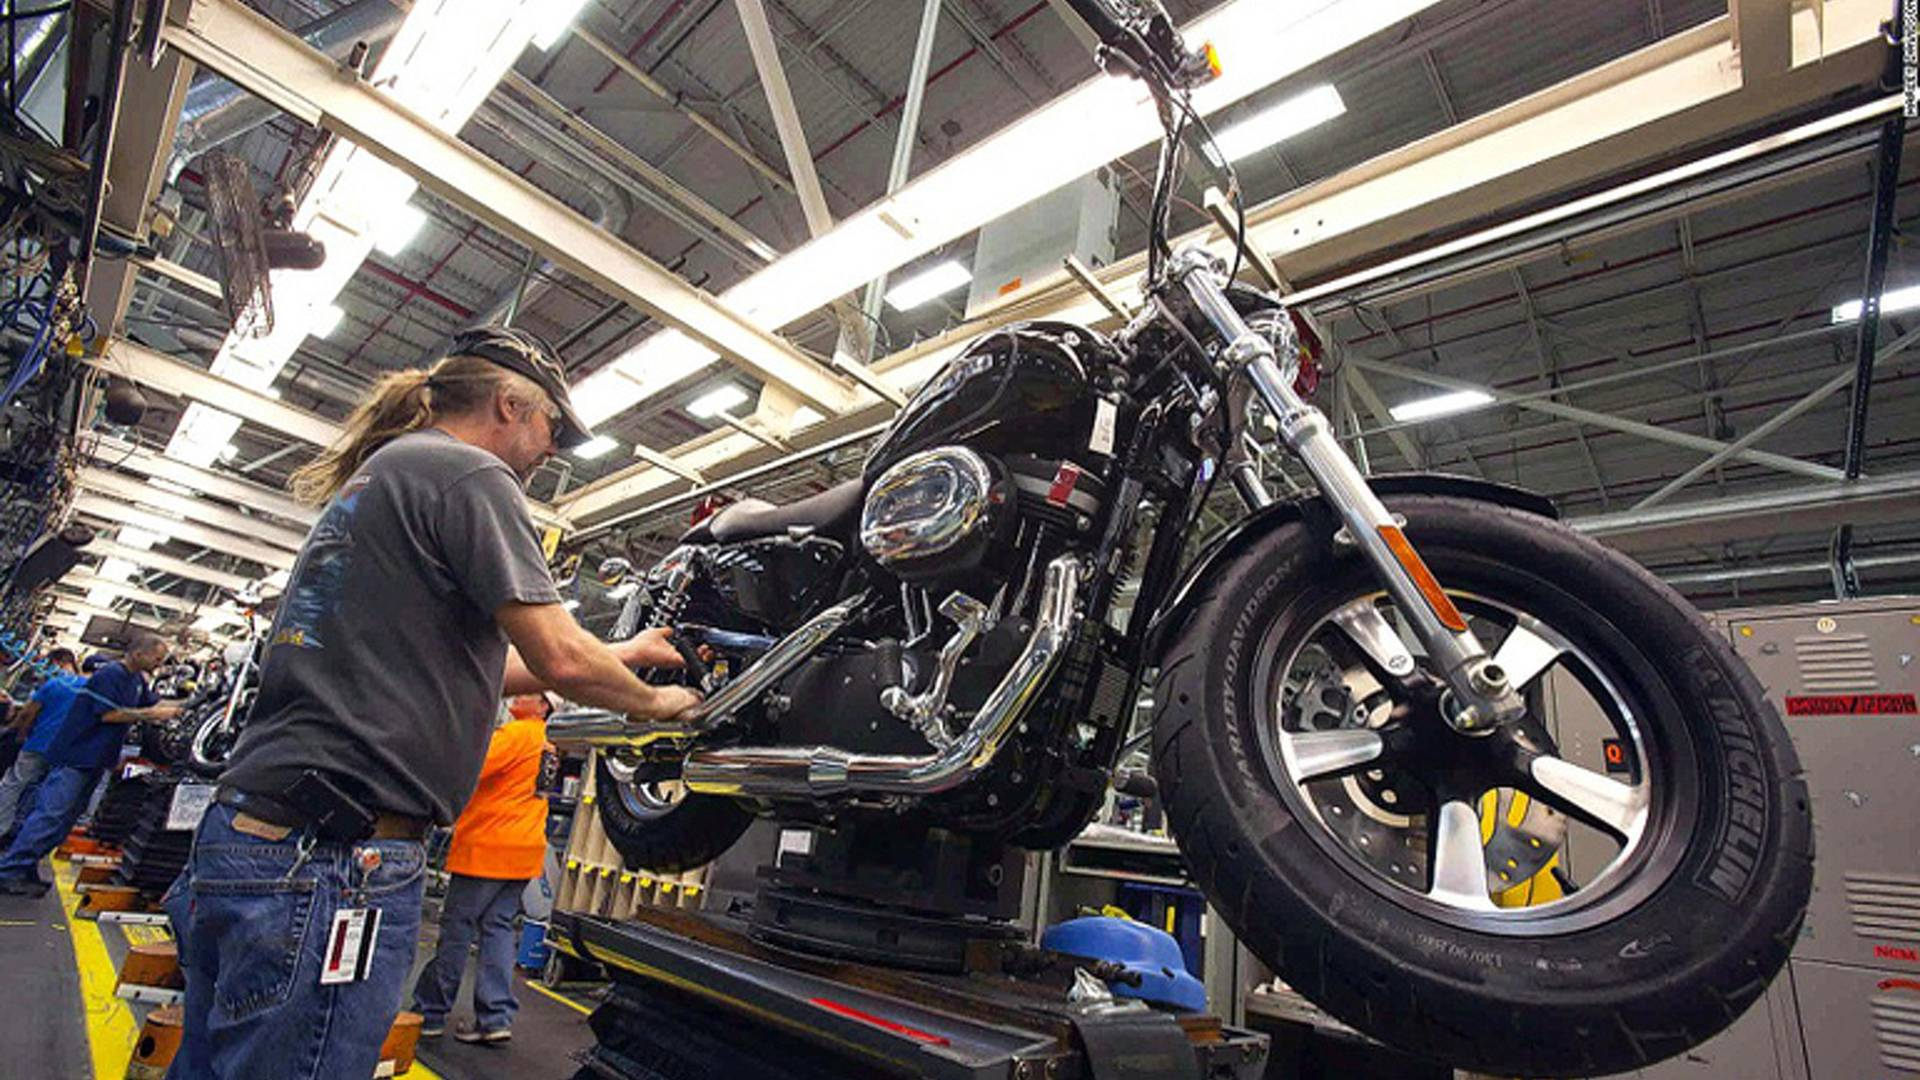 Unions End Long Standing Agreement With Harley Davidson